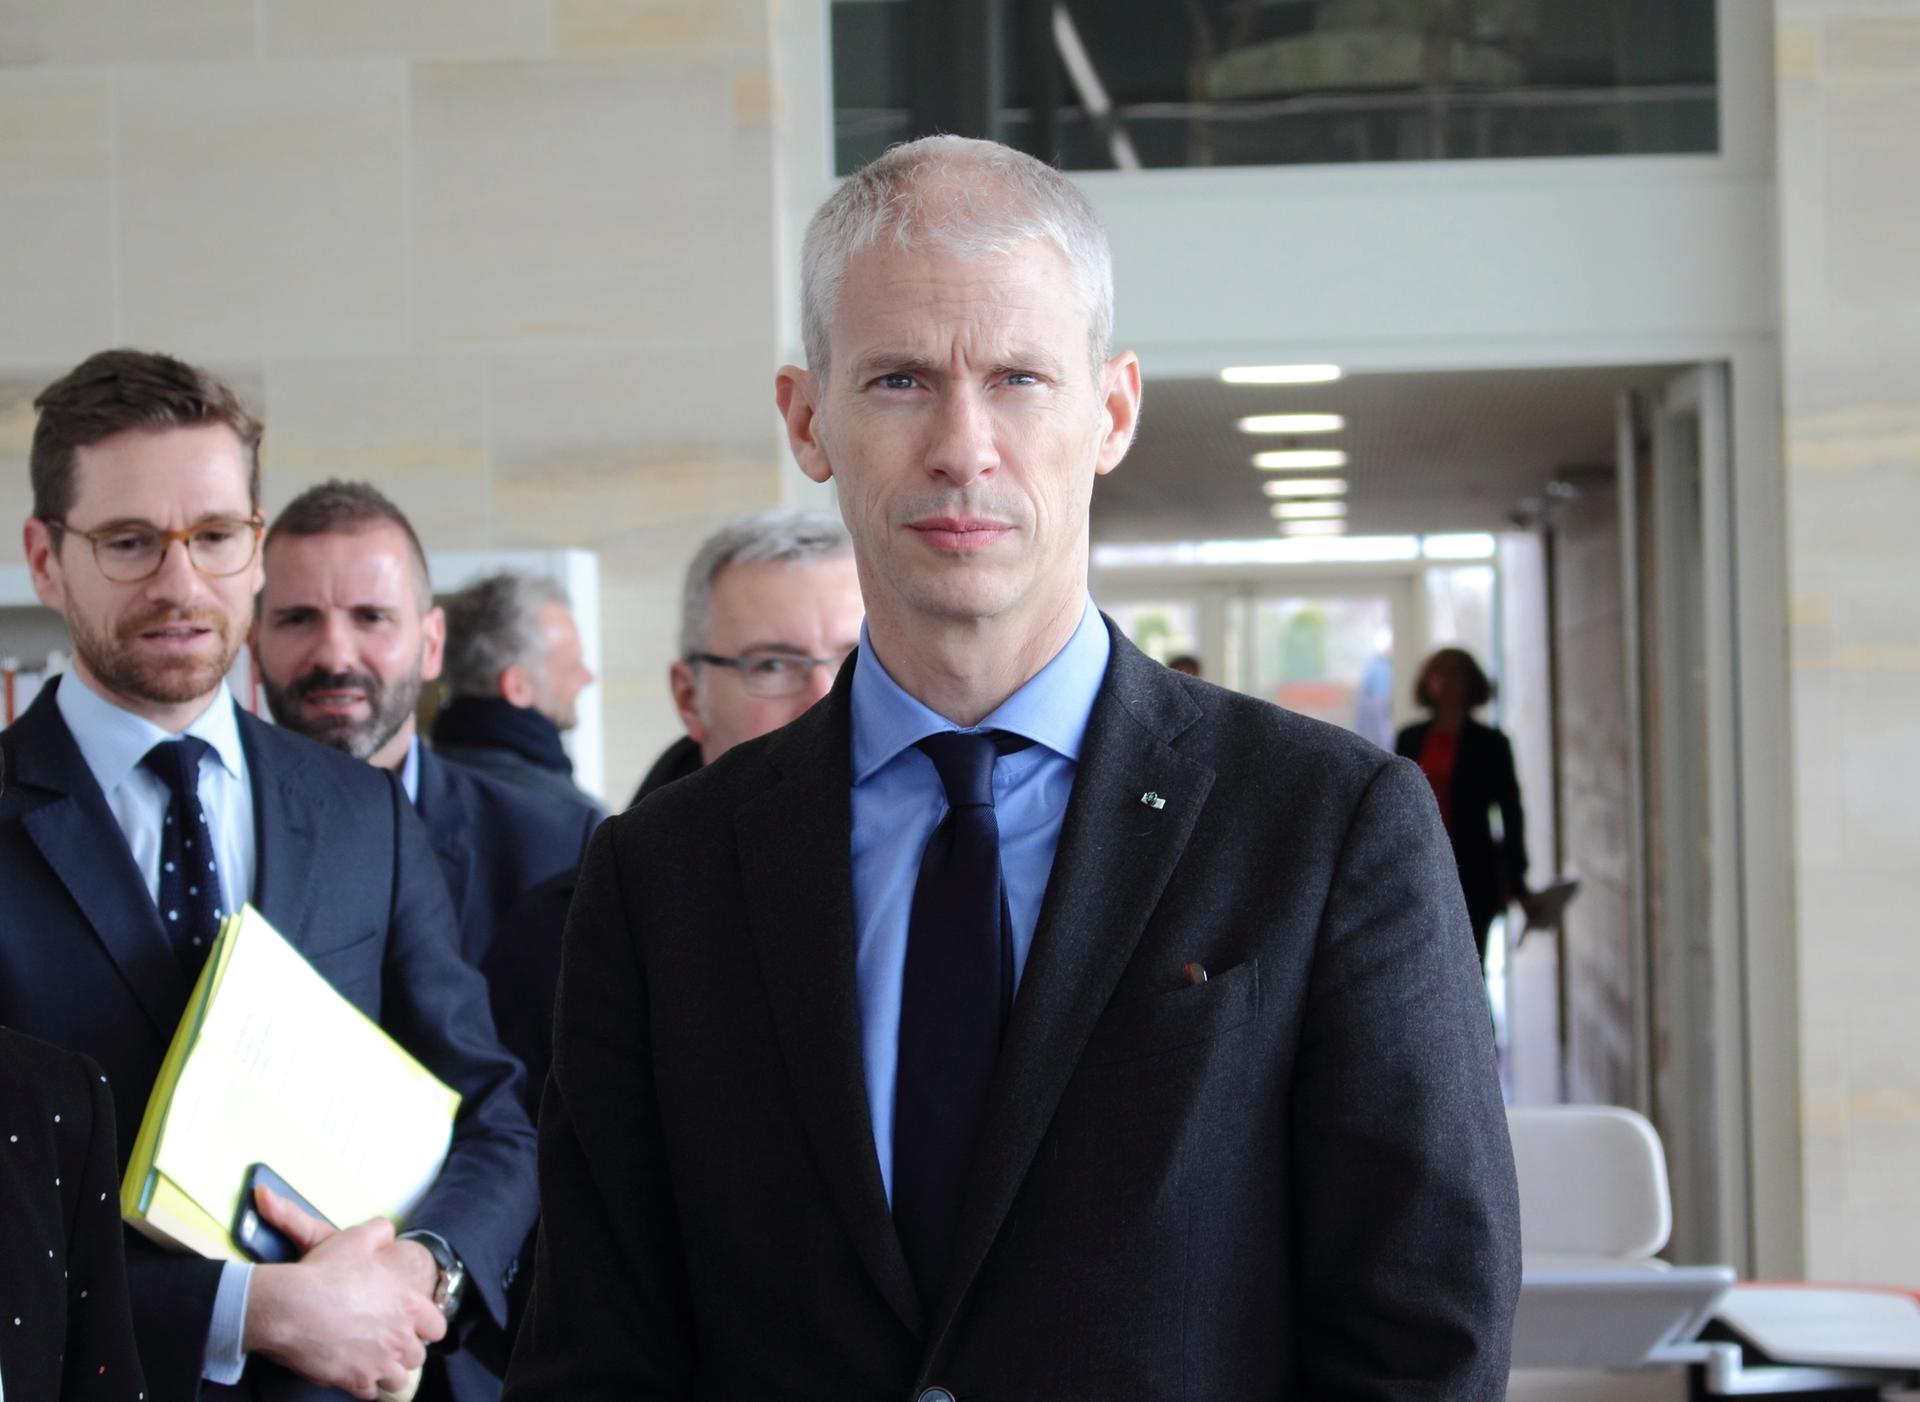 French culture minister Franck Riester Photo: ActuaLitté via Flickr